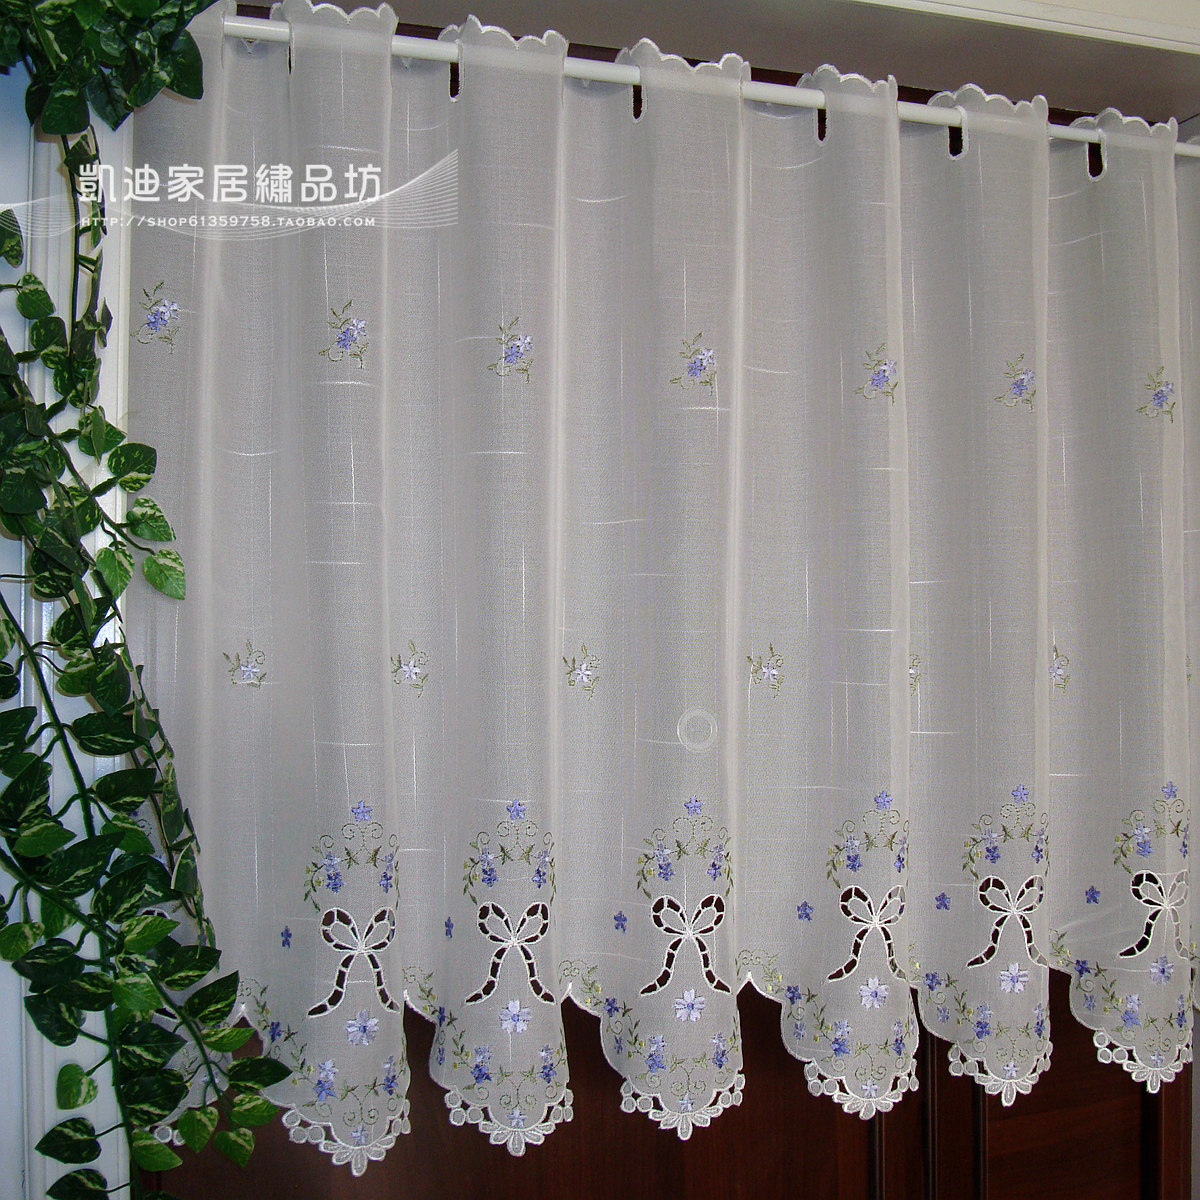 Semi-shade-embroidery-rustic-curtain-fabric-kitchen-curtains-coffee-curtain-blue-flowers-45-60